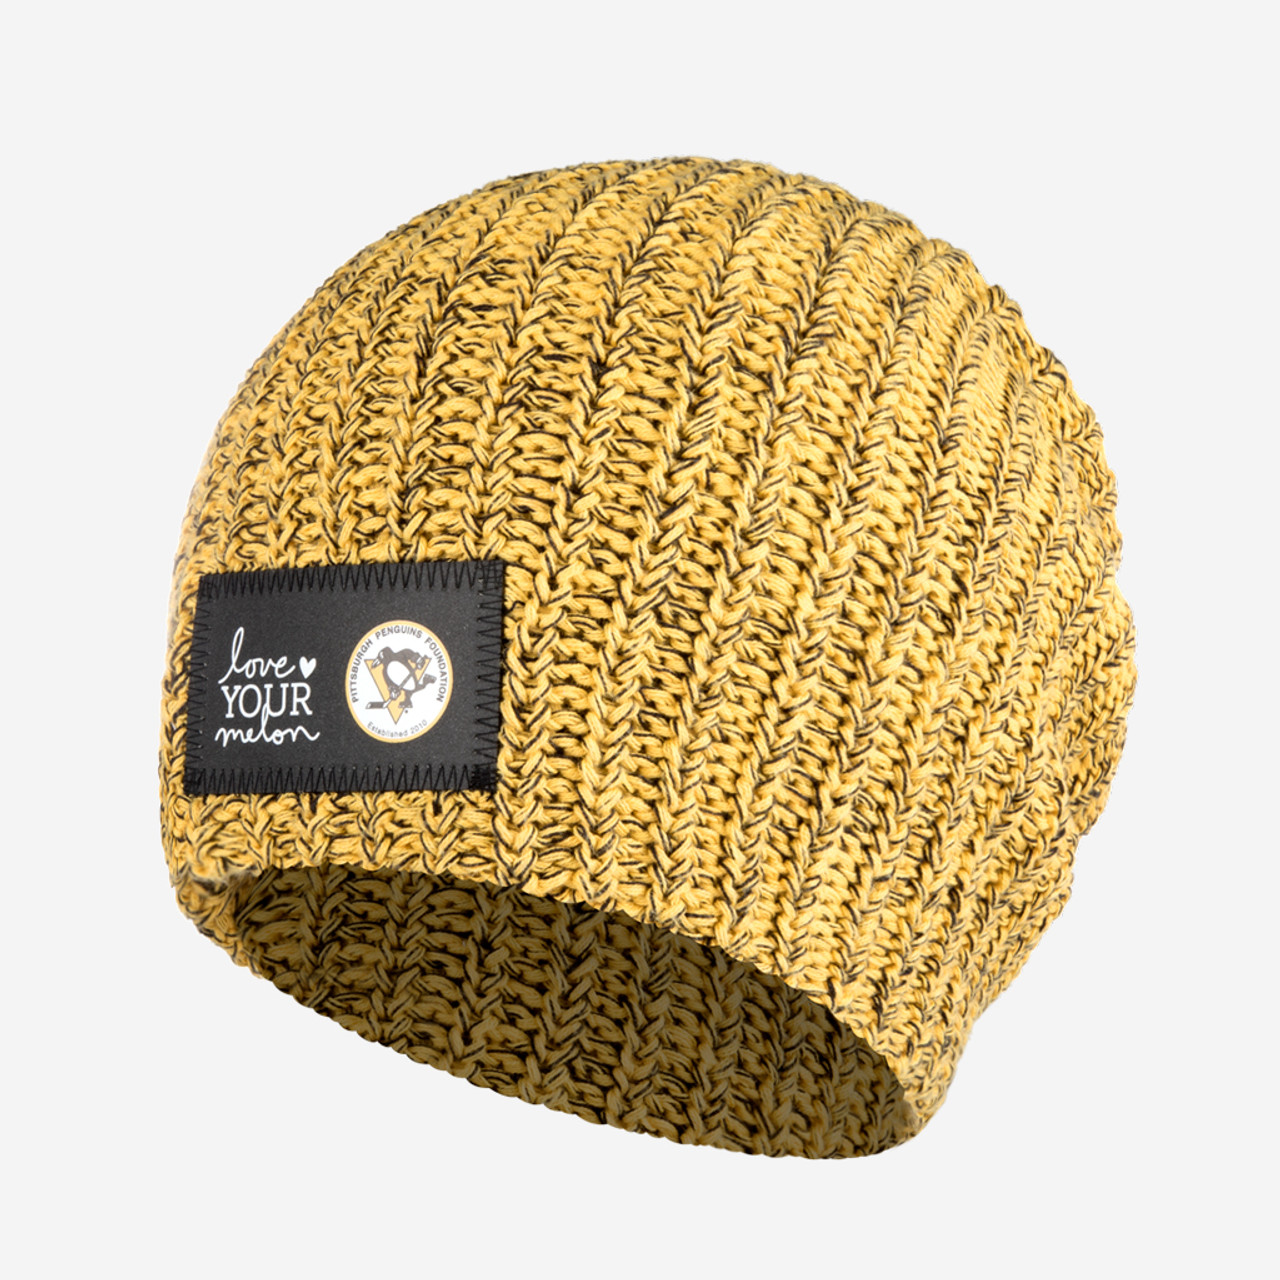 86a79af342c23 Pittsburgh Penguins Love Your Melon Beanie - Wendell August Forge